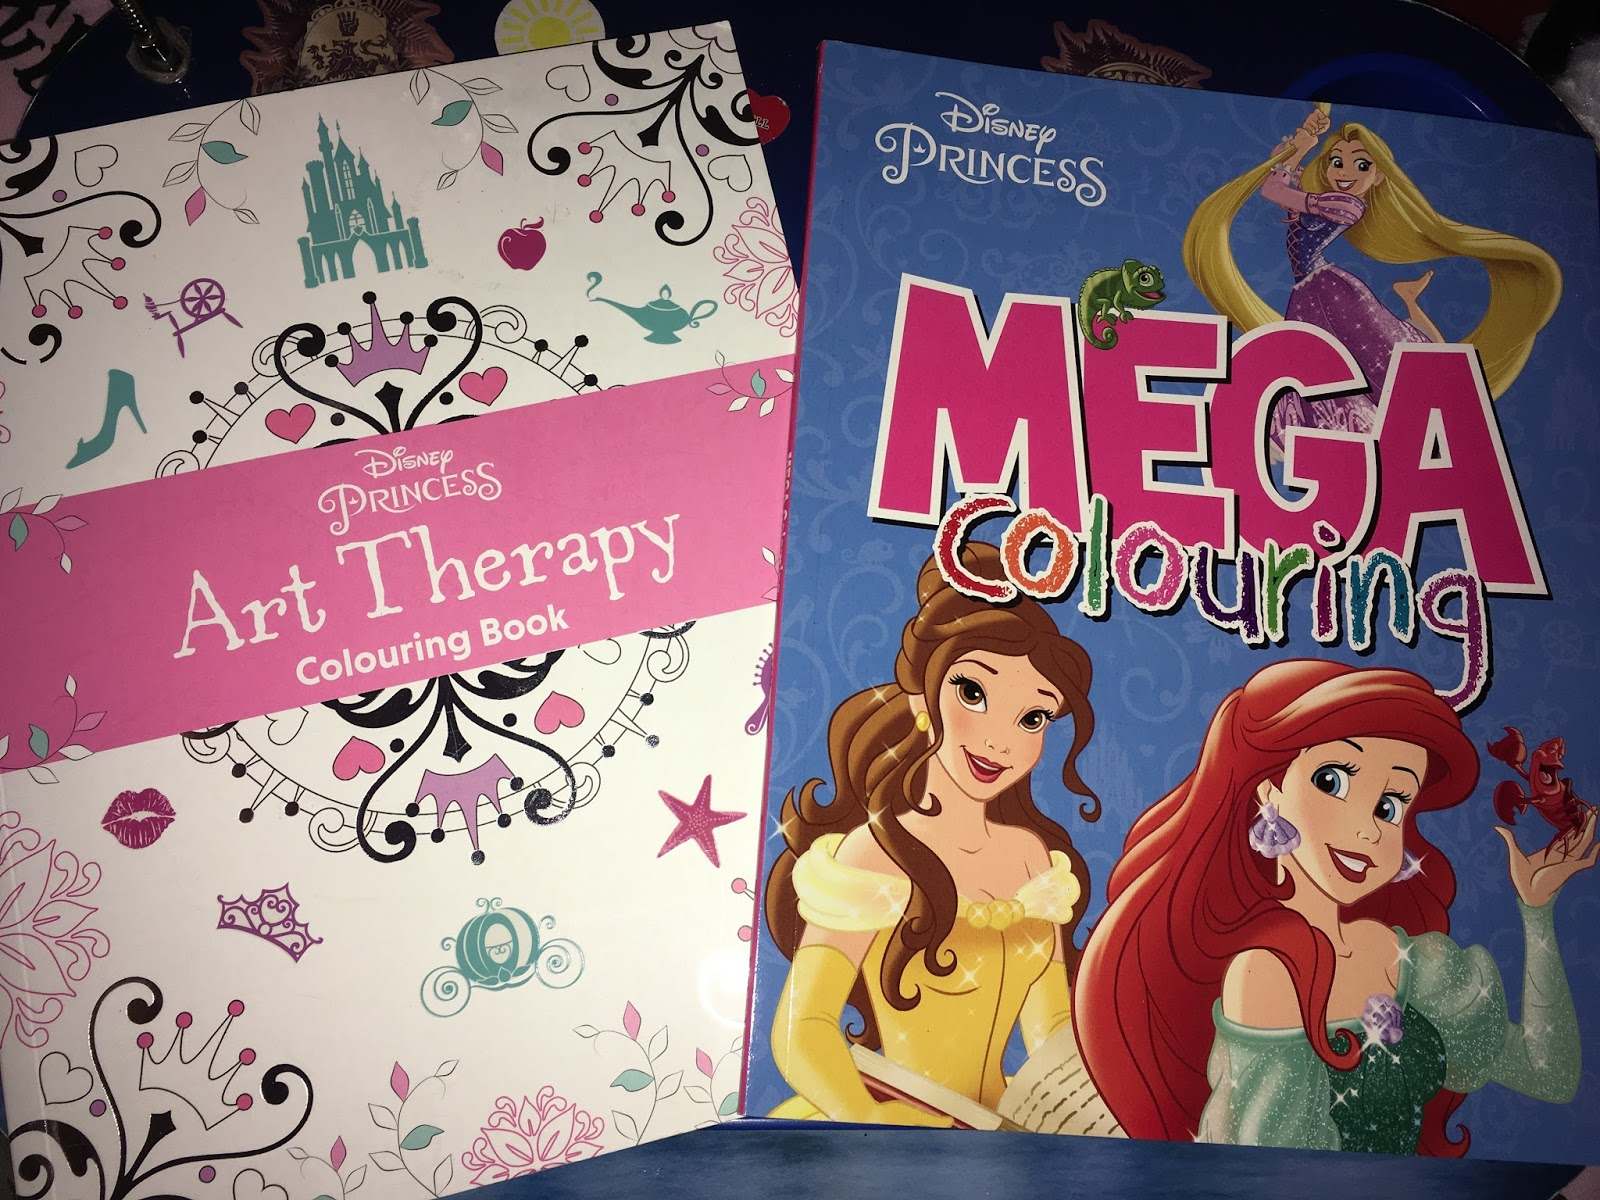 Disney Princess Art Therapy Colouring Book And Mega Books